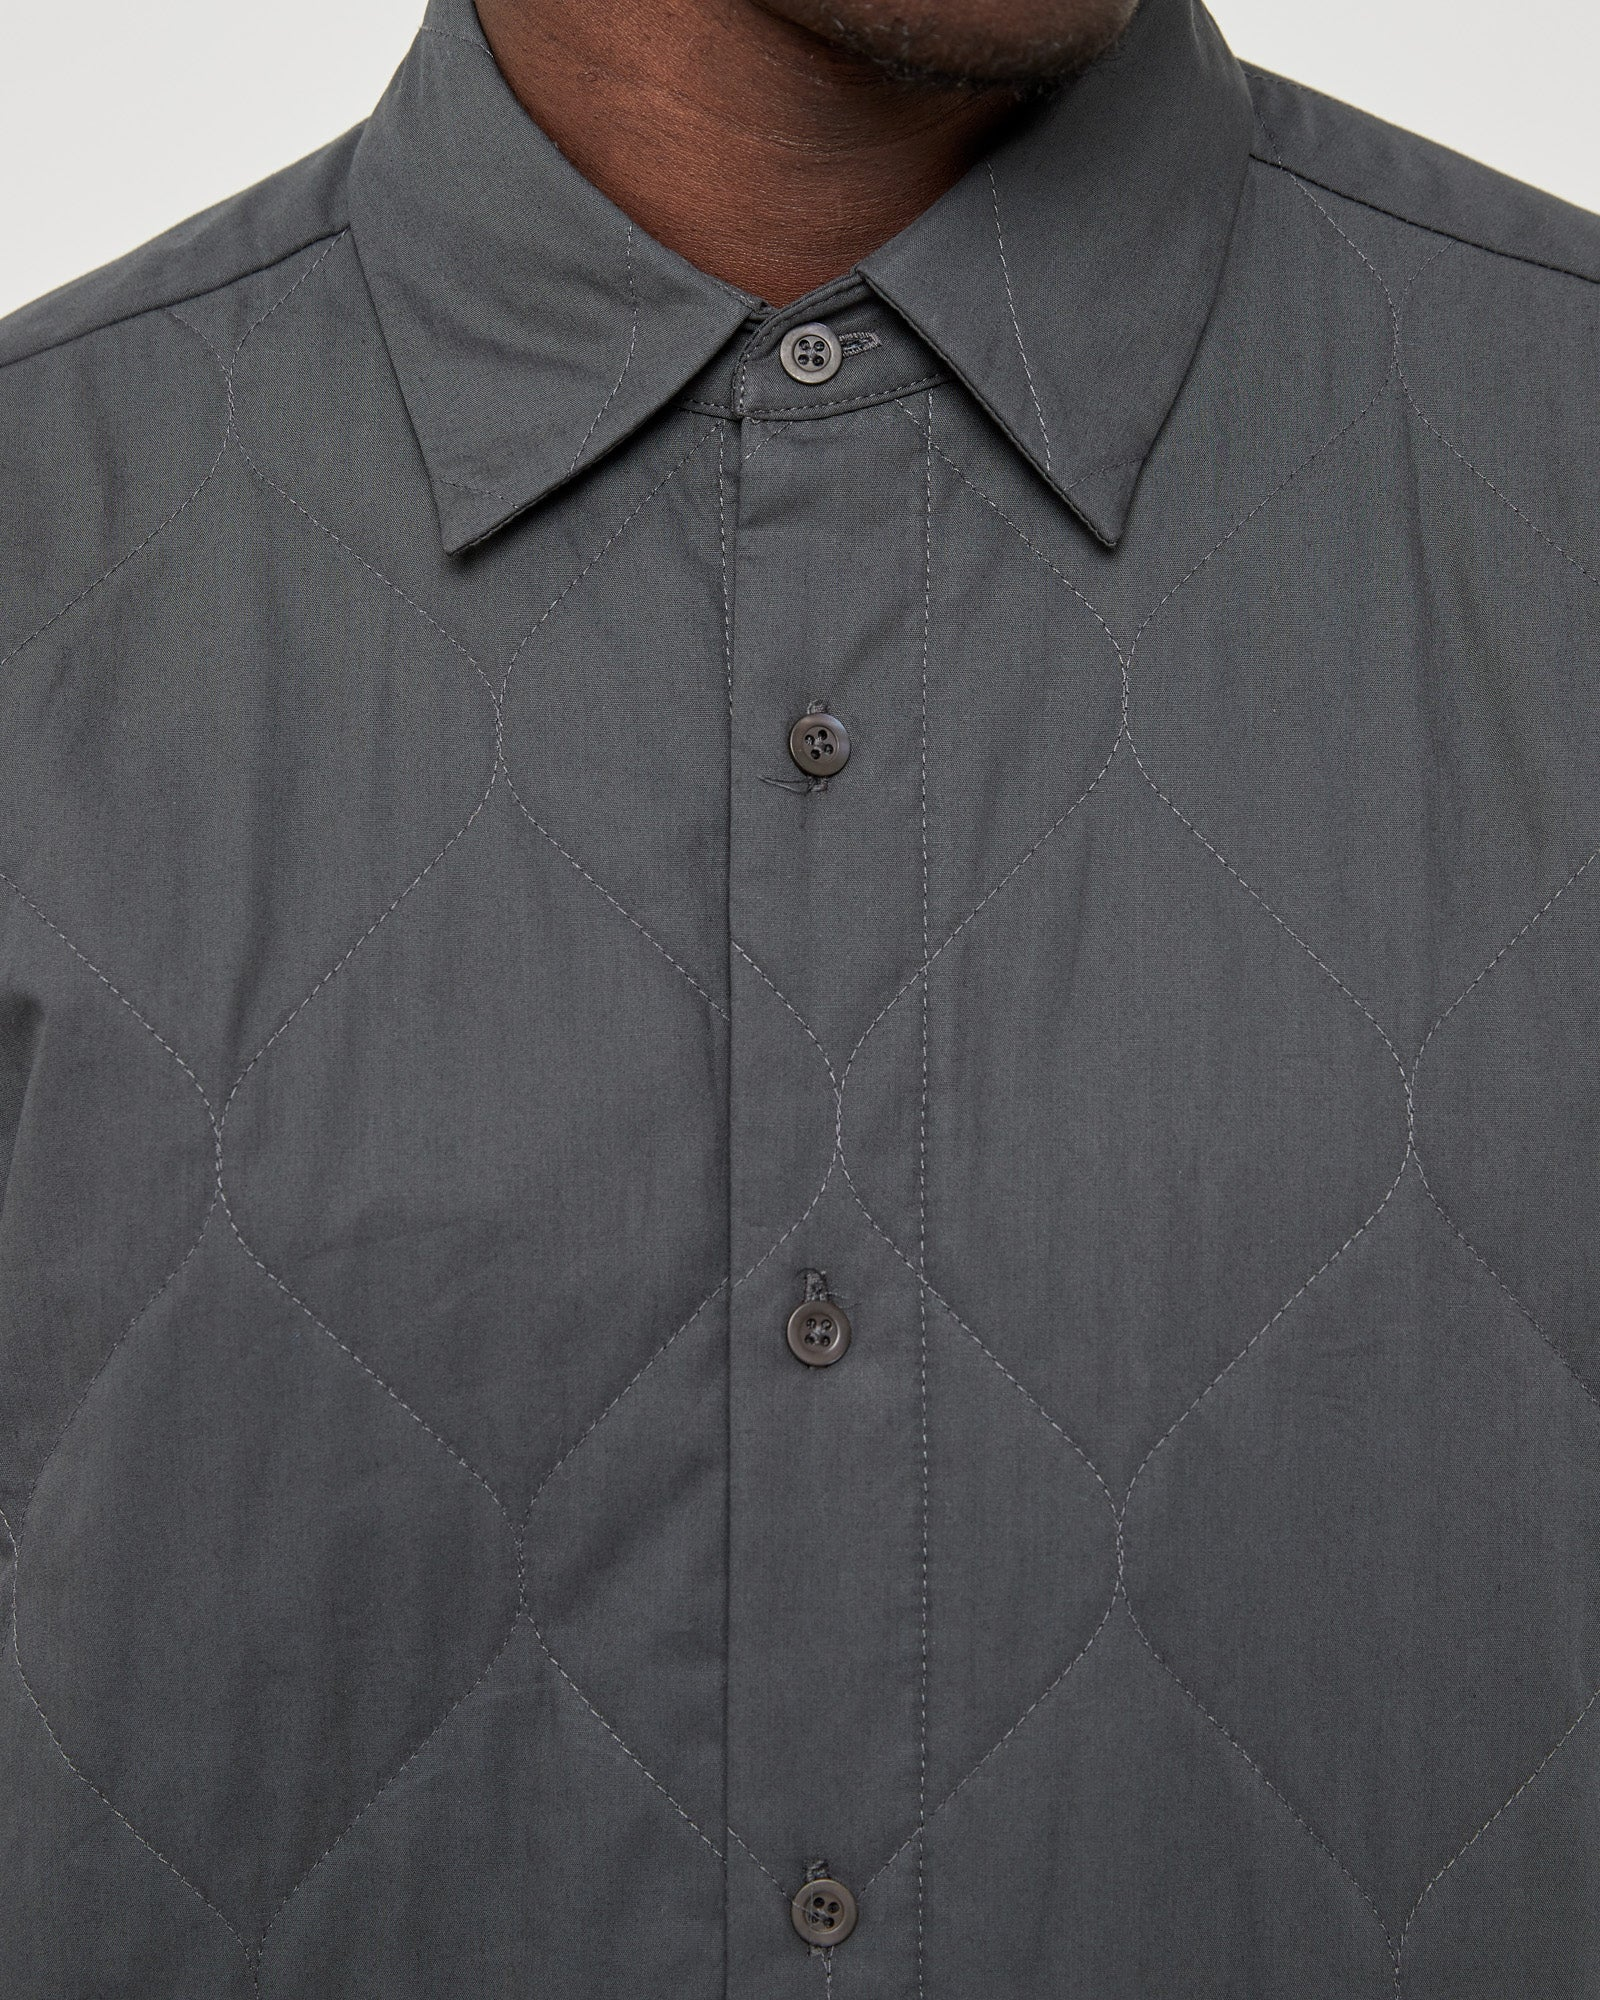 Constable Shirt in Anthracite